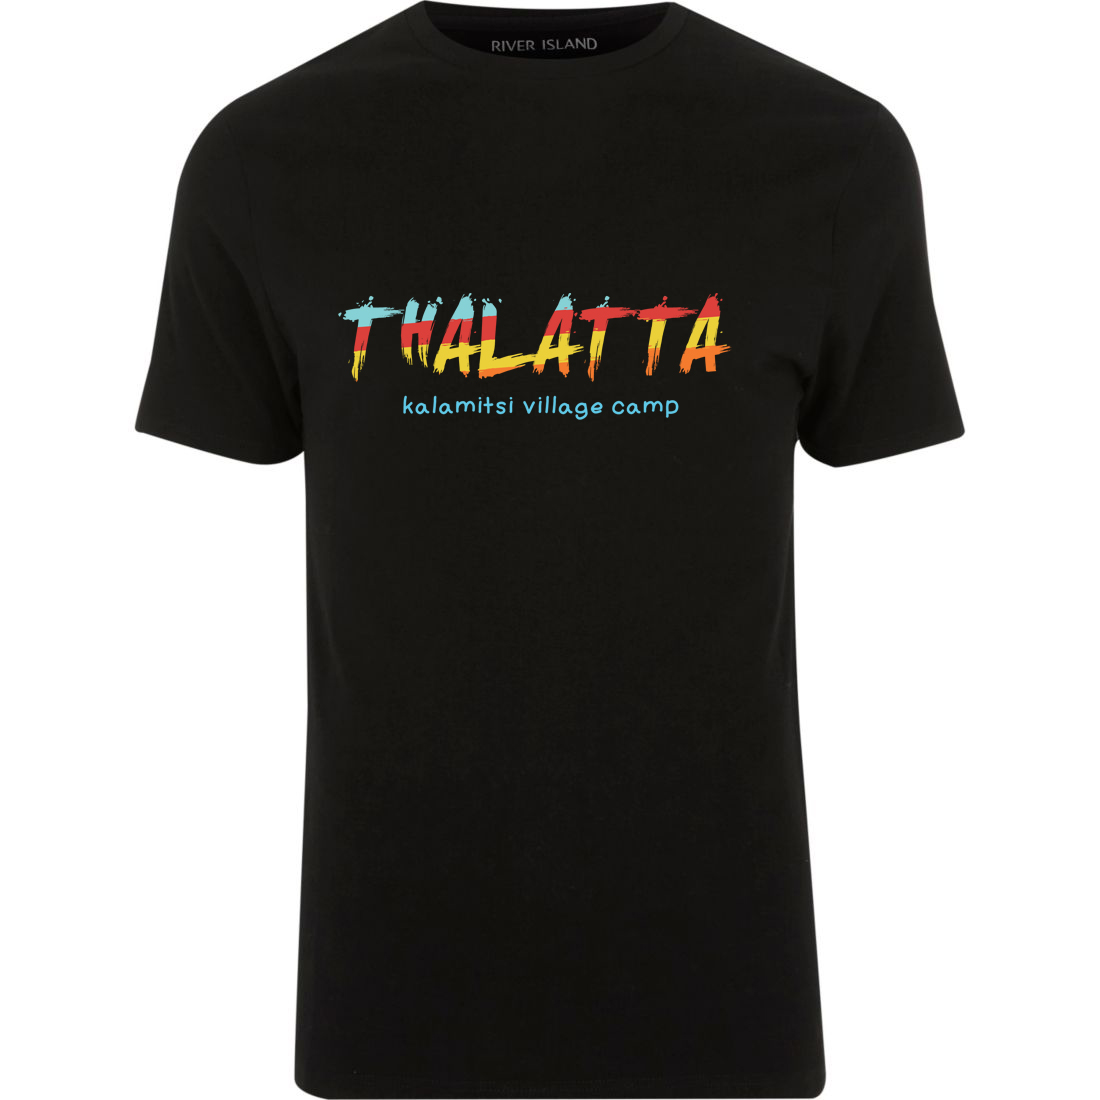 Thalatta Camp T-Shirt (Black)